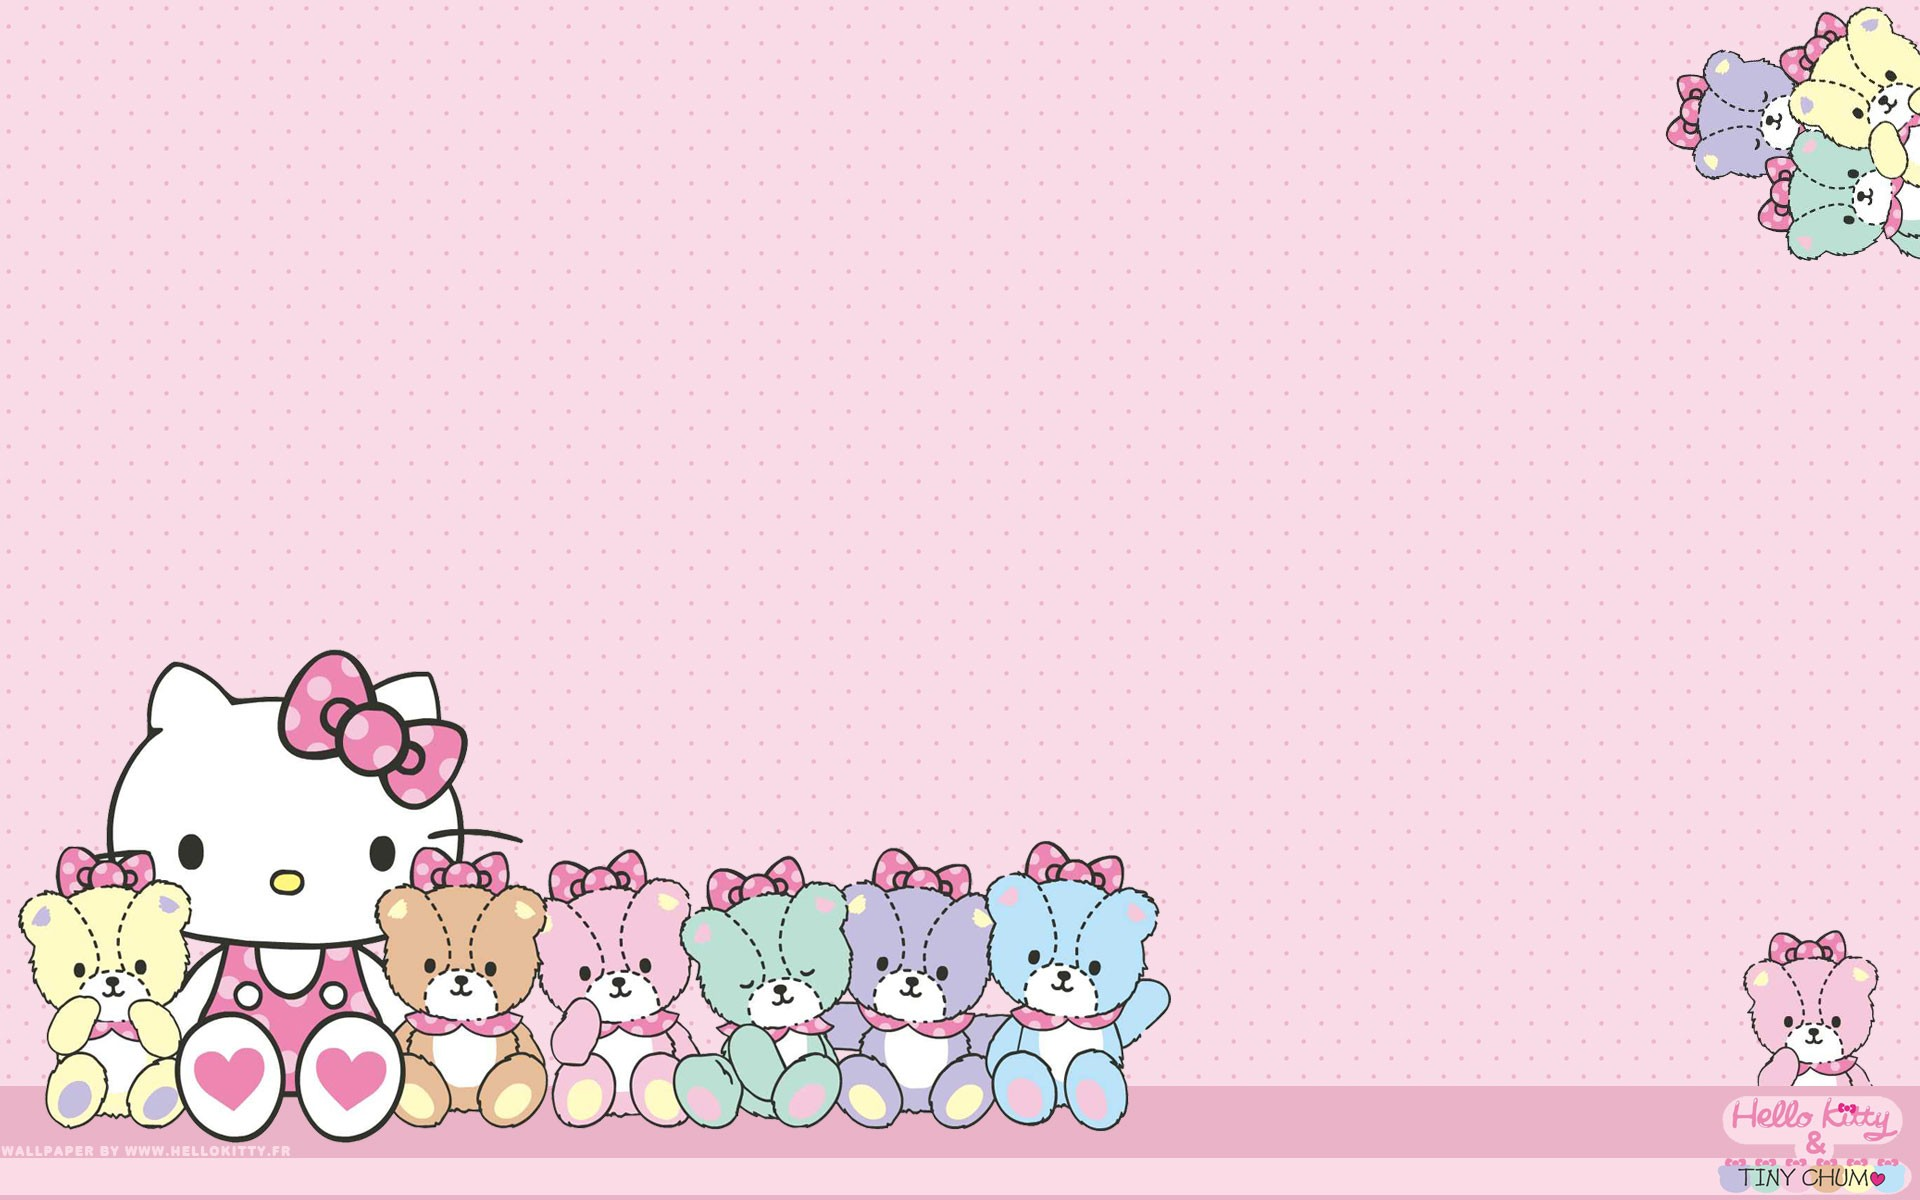 Most Inspiring Wallpaper Hello Kitty Iphone 5 - 132066-widescreen-hello-kitty-background-1920x1200-for-iphone  Collection_14618.jpg